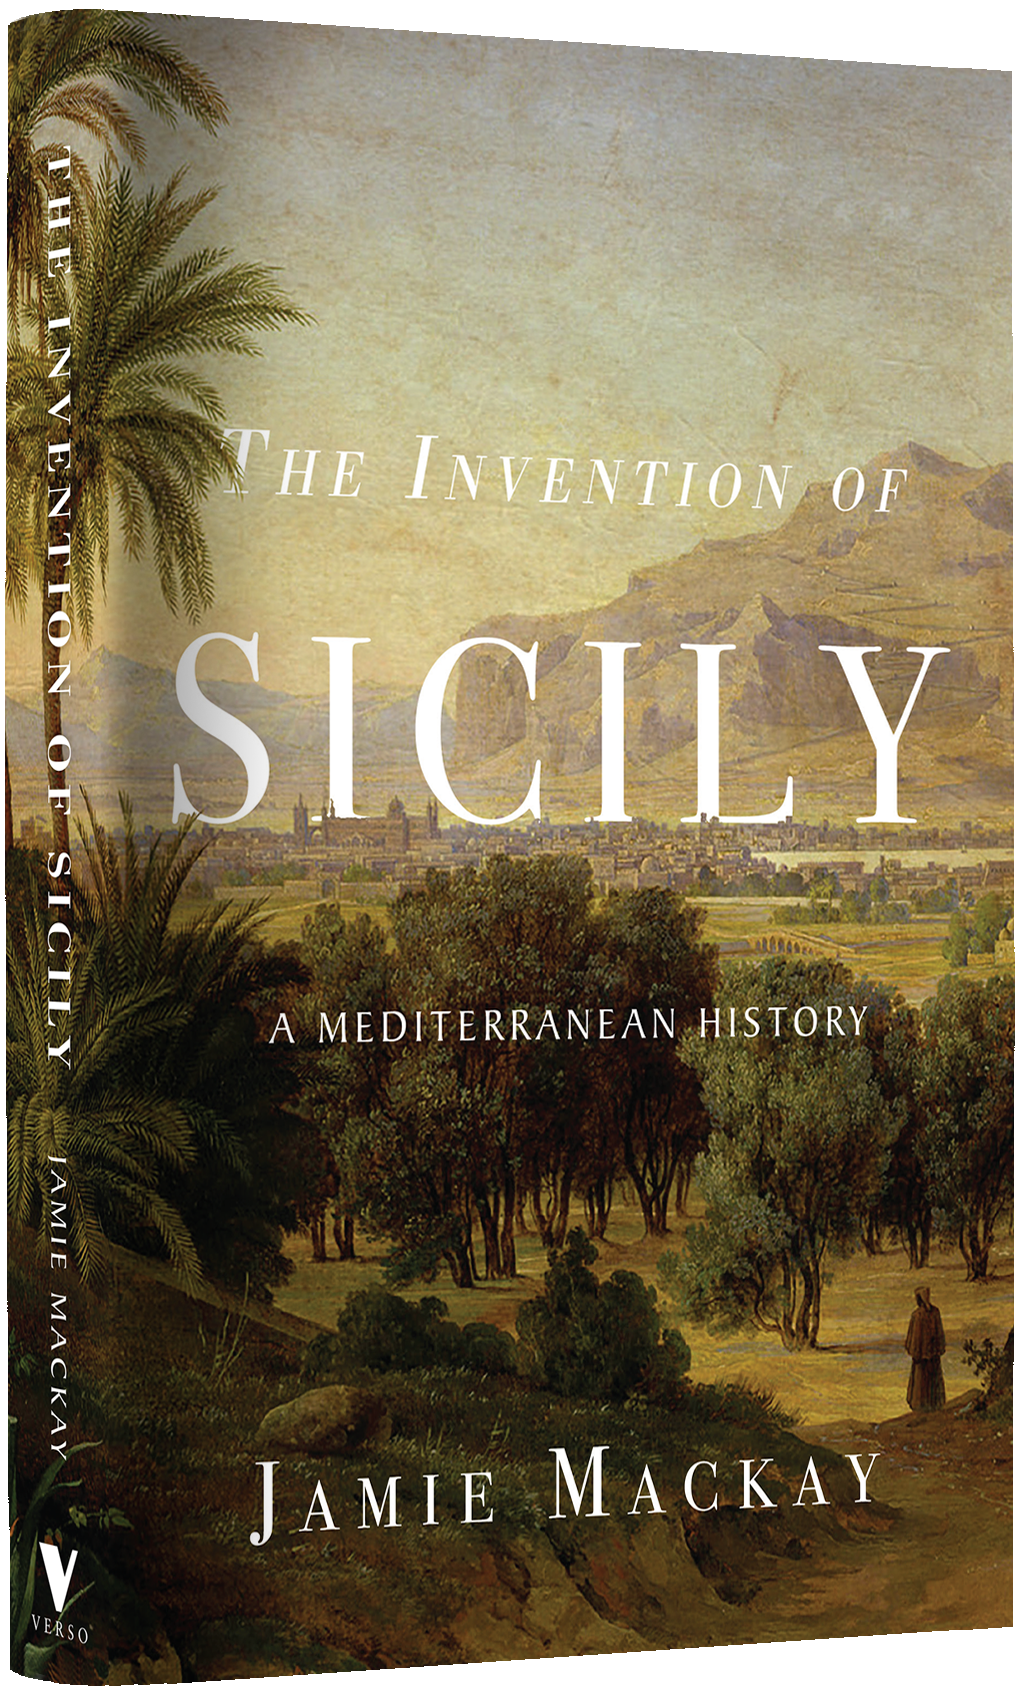 The-invention-of-sicily